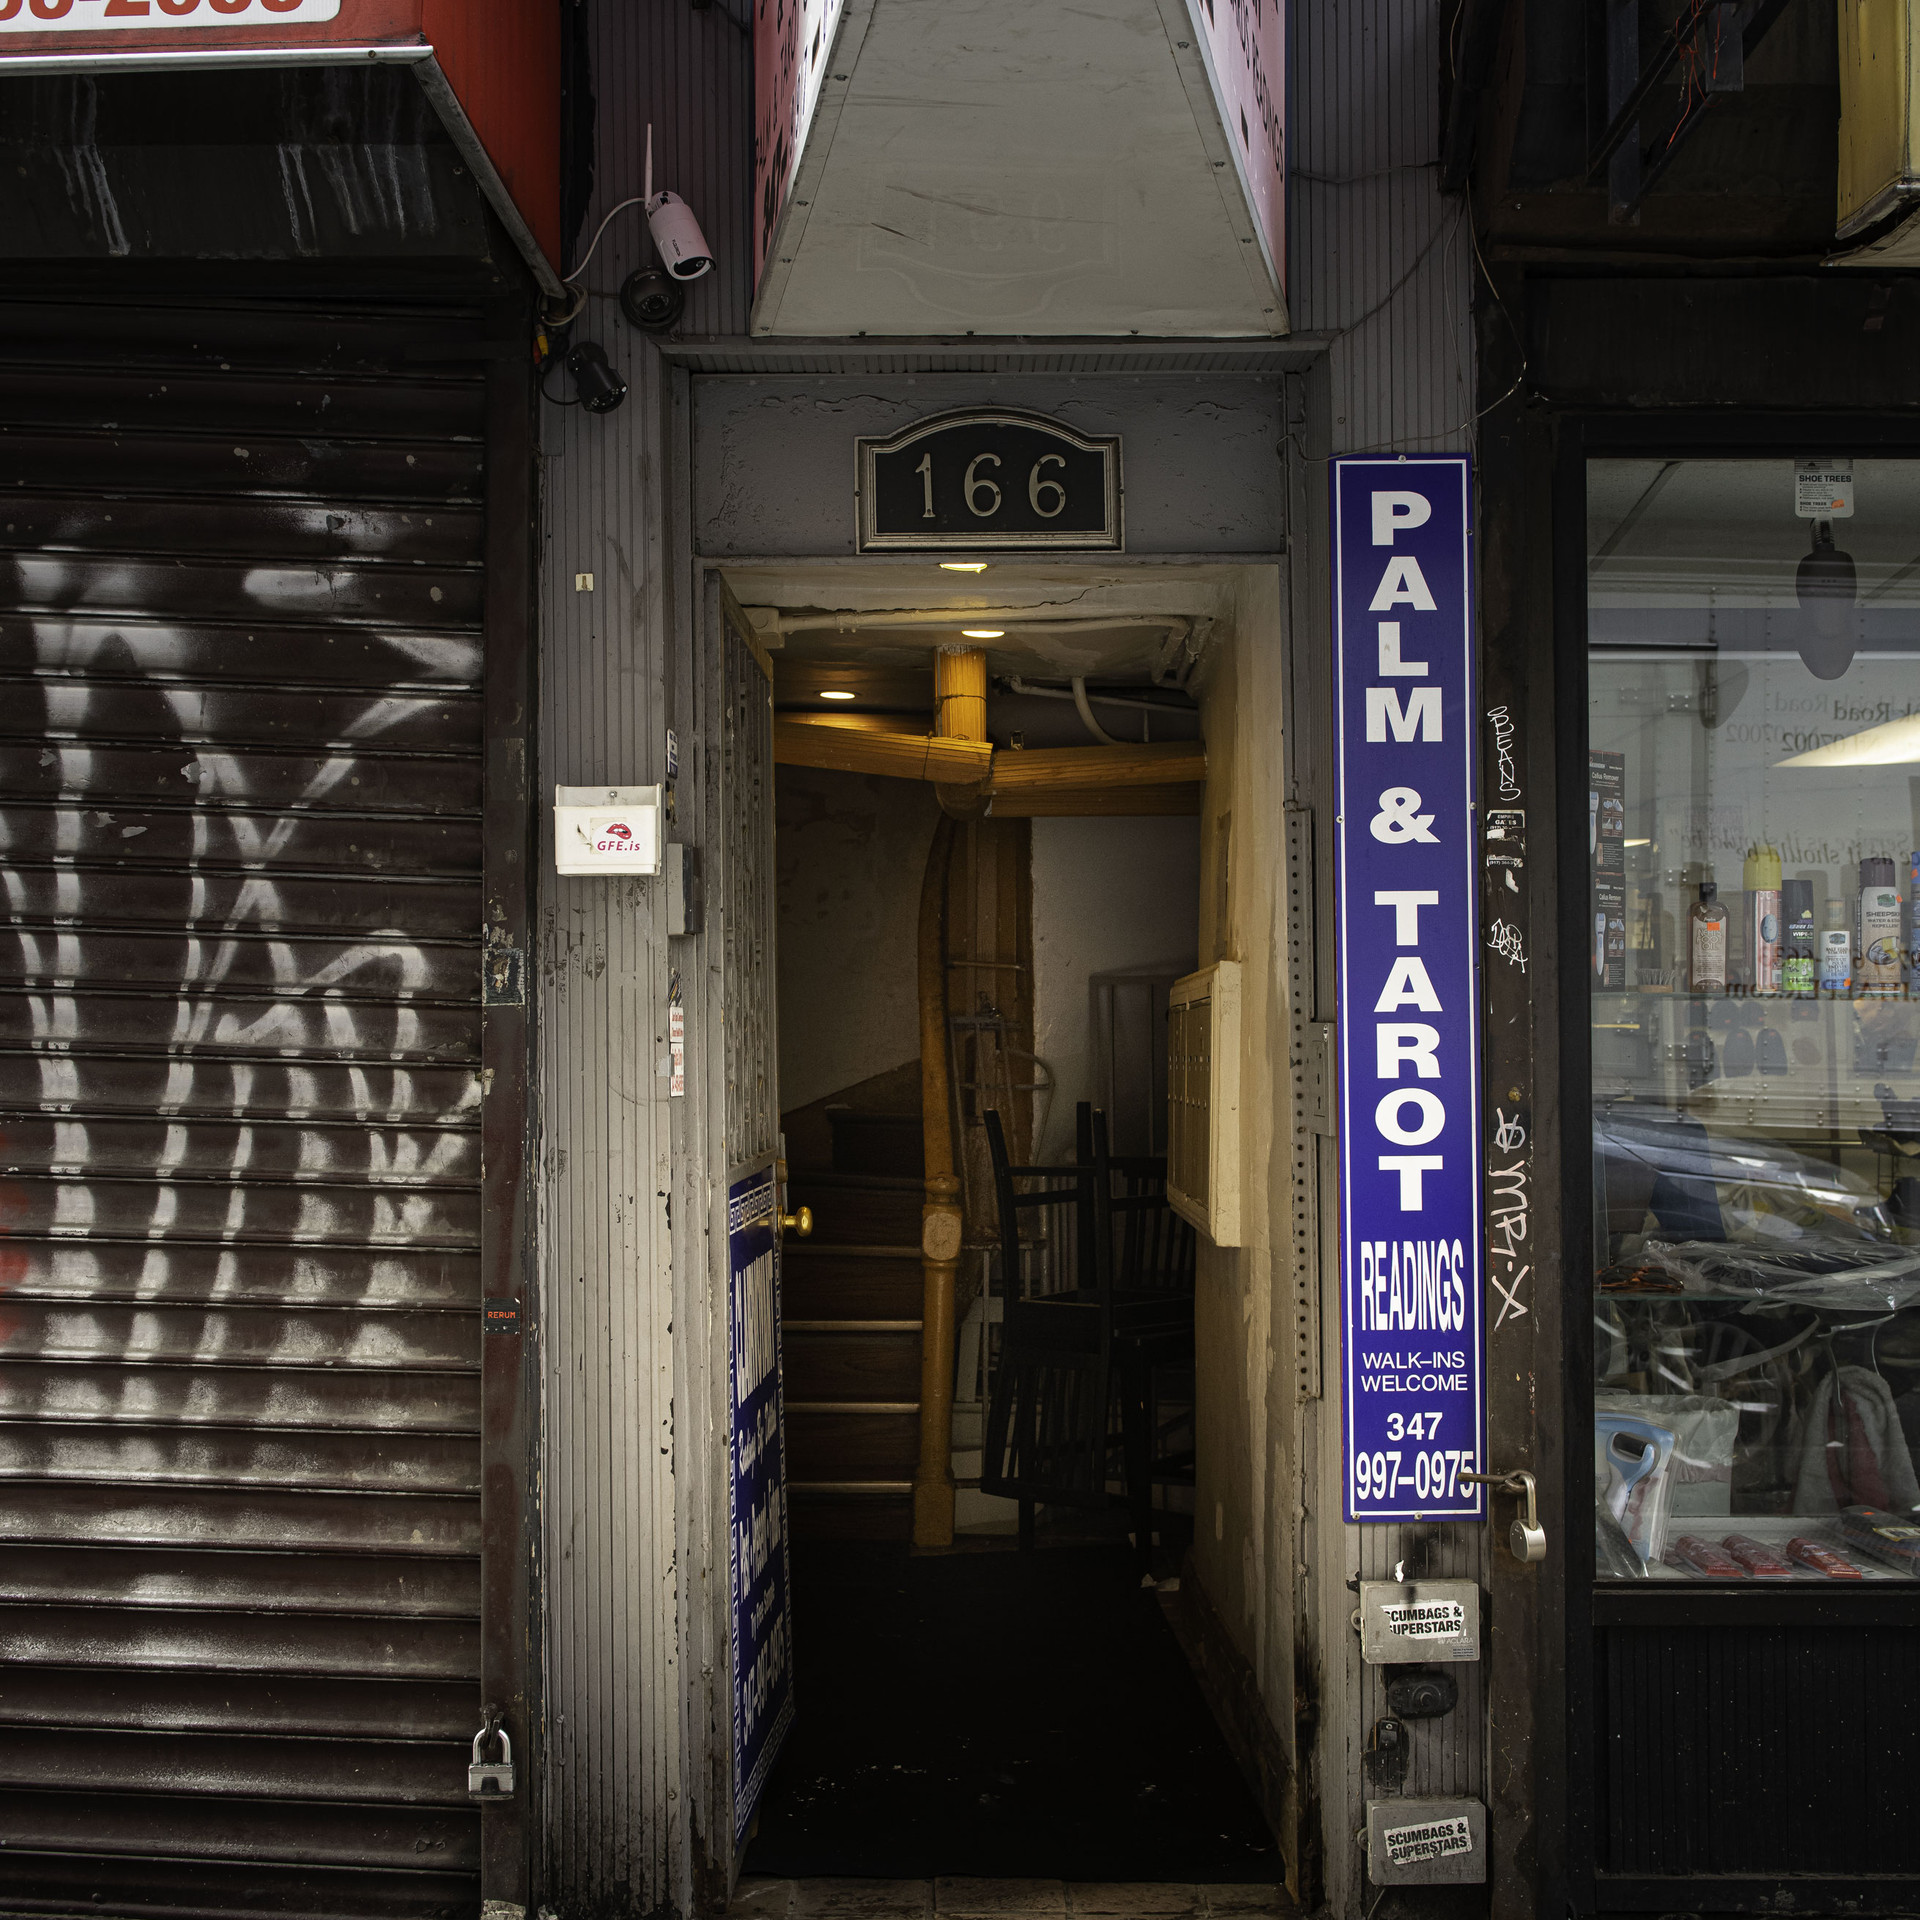 PALM AND TAROT New York Intimate Limited Edition Photography